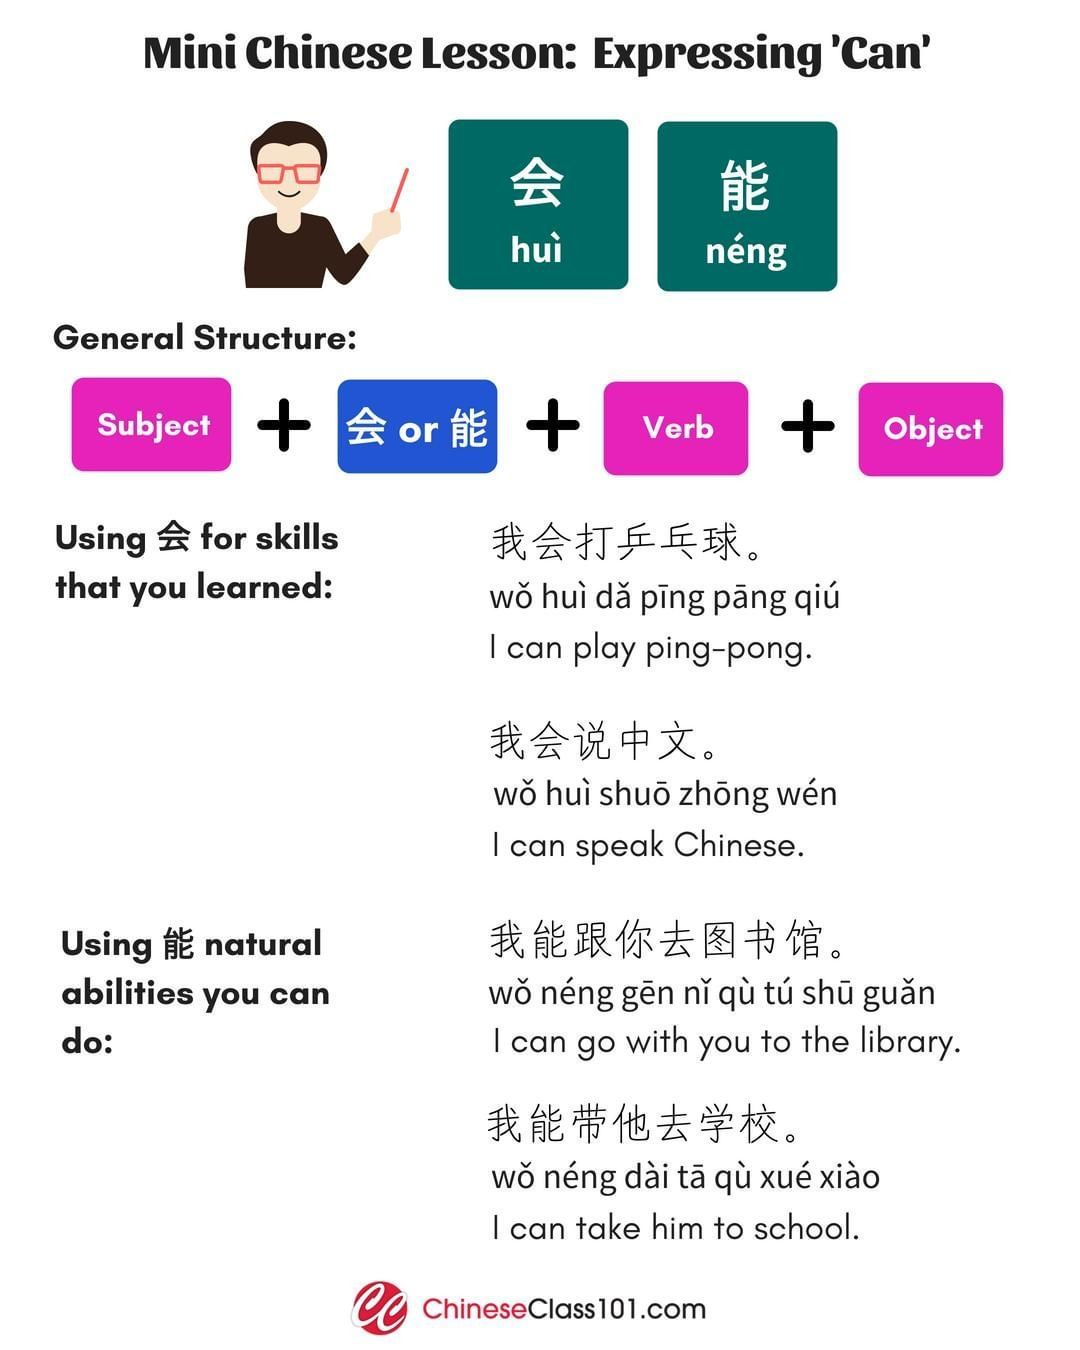 Can you express can? Let us know! . Want to learn Chinese